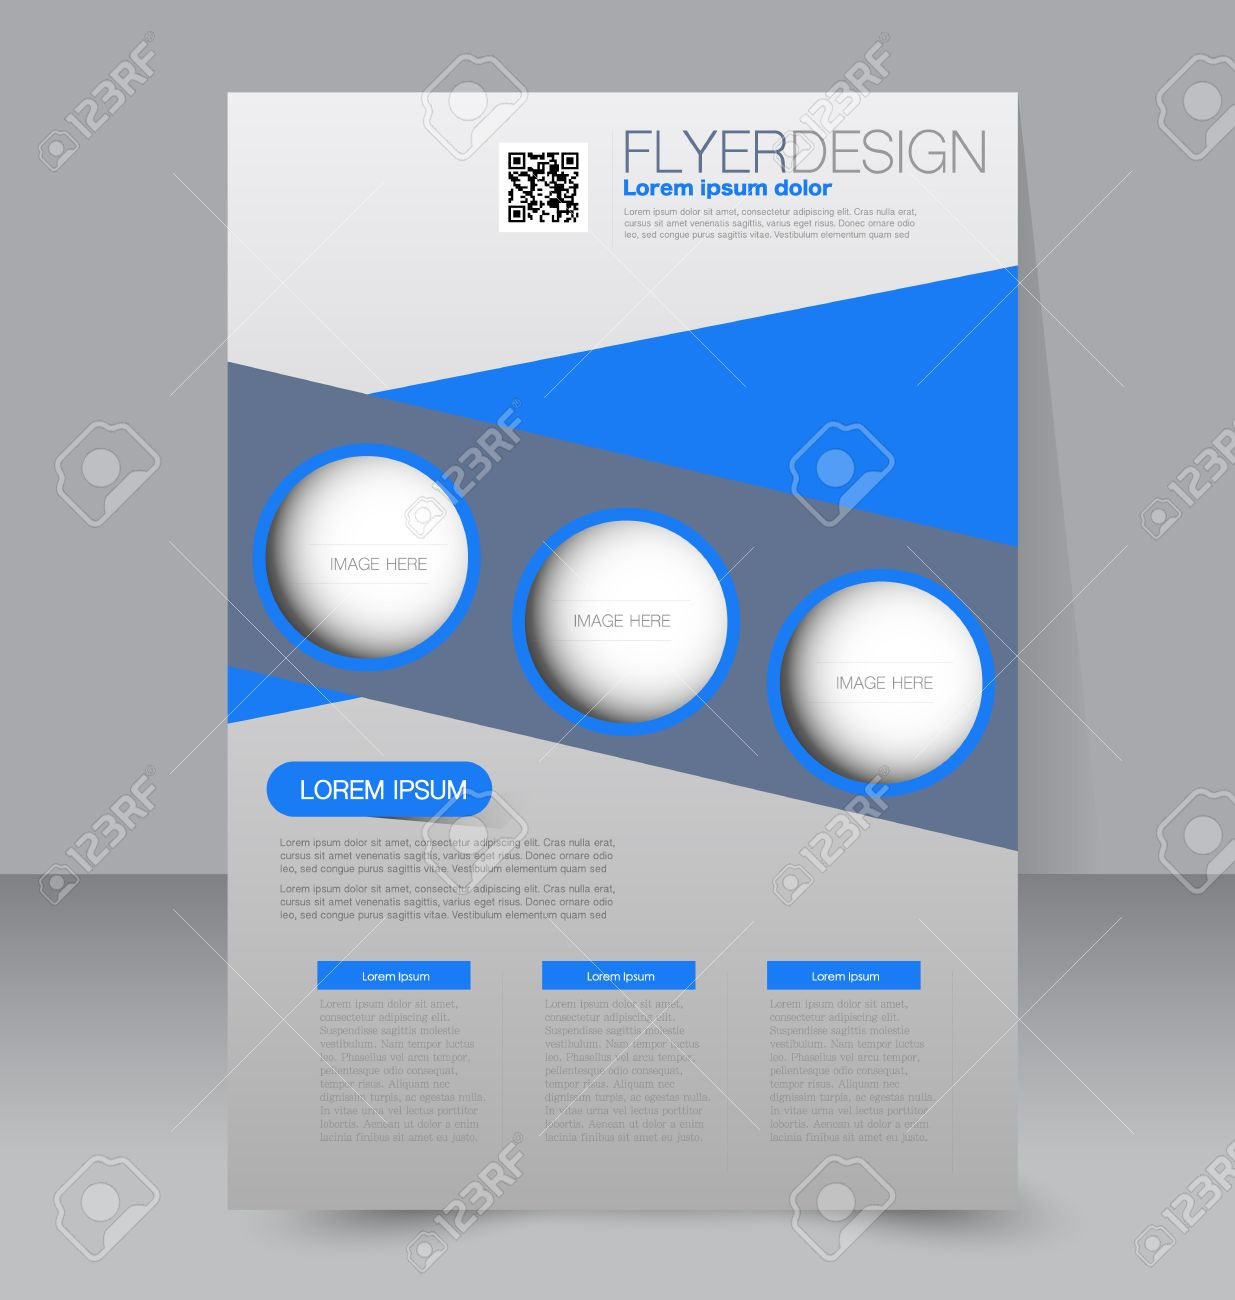 Flyer Template. Business Brochure. Editable A4 Poster For Design ...